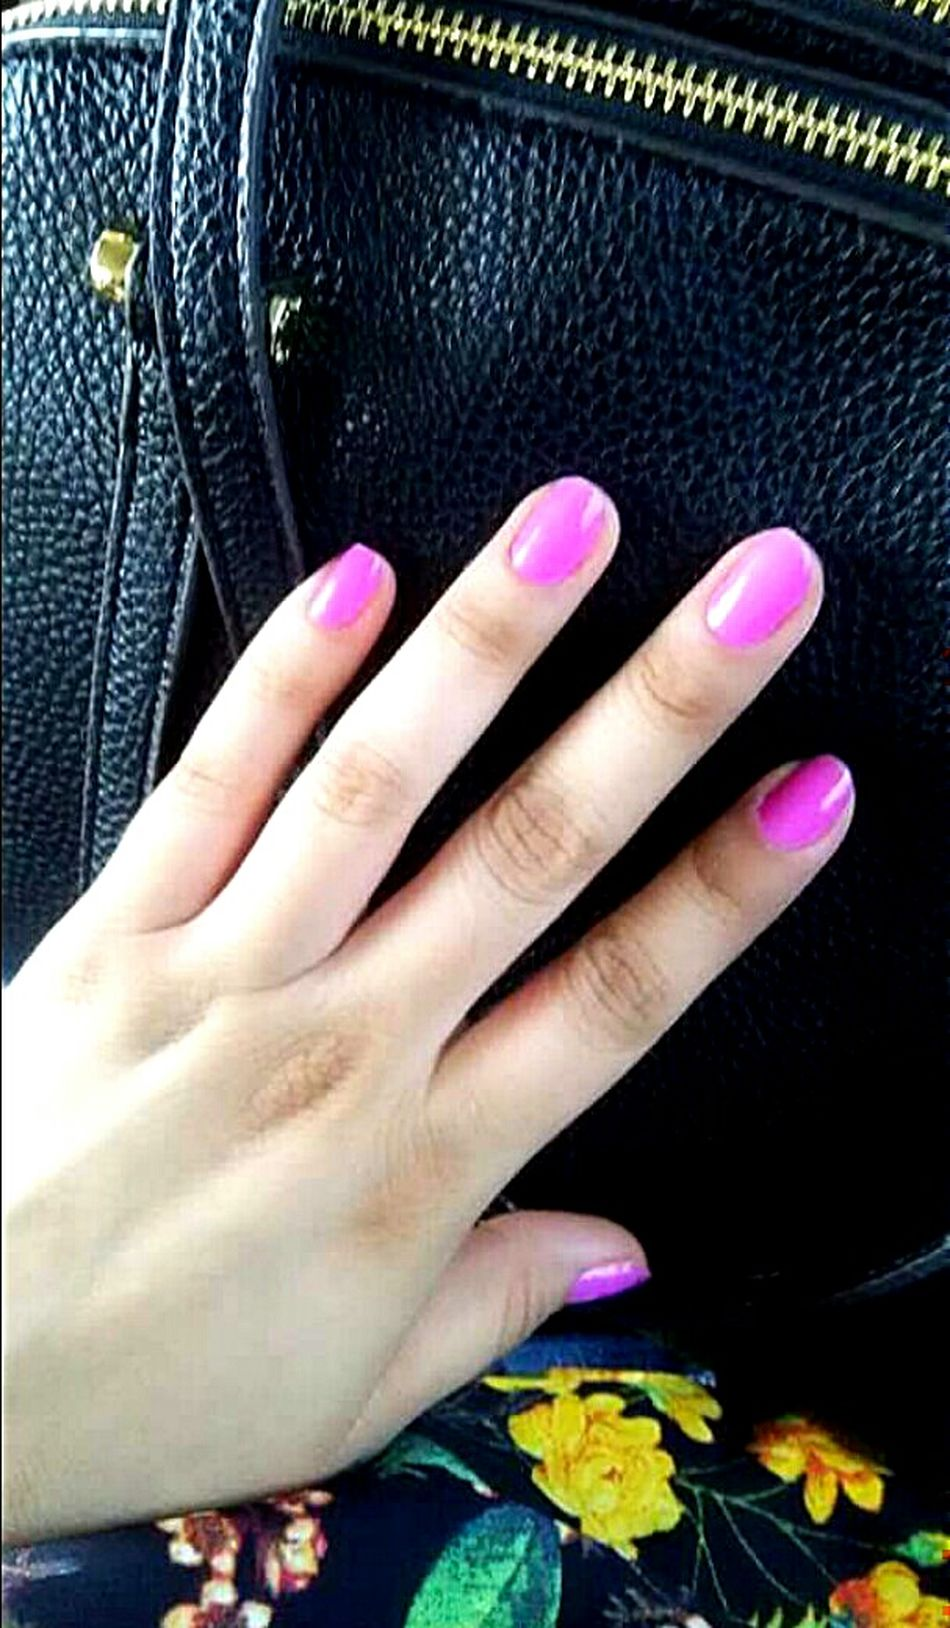 Manicure! Nails On Point Girlygirl Girl Thing Nail Polish Bright Colorful It Girl